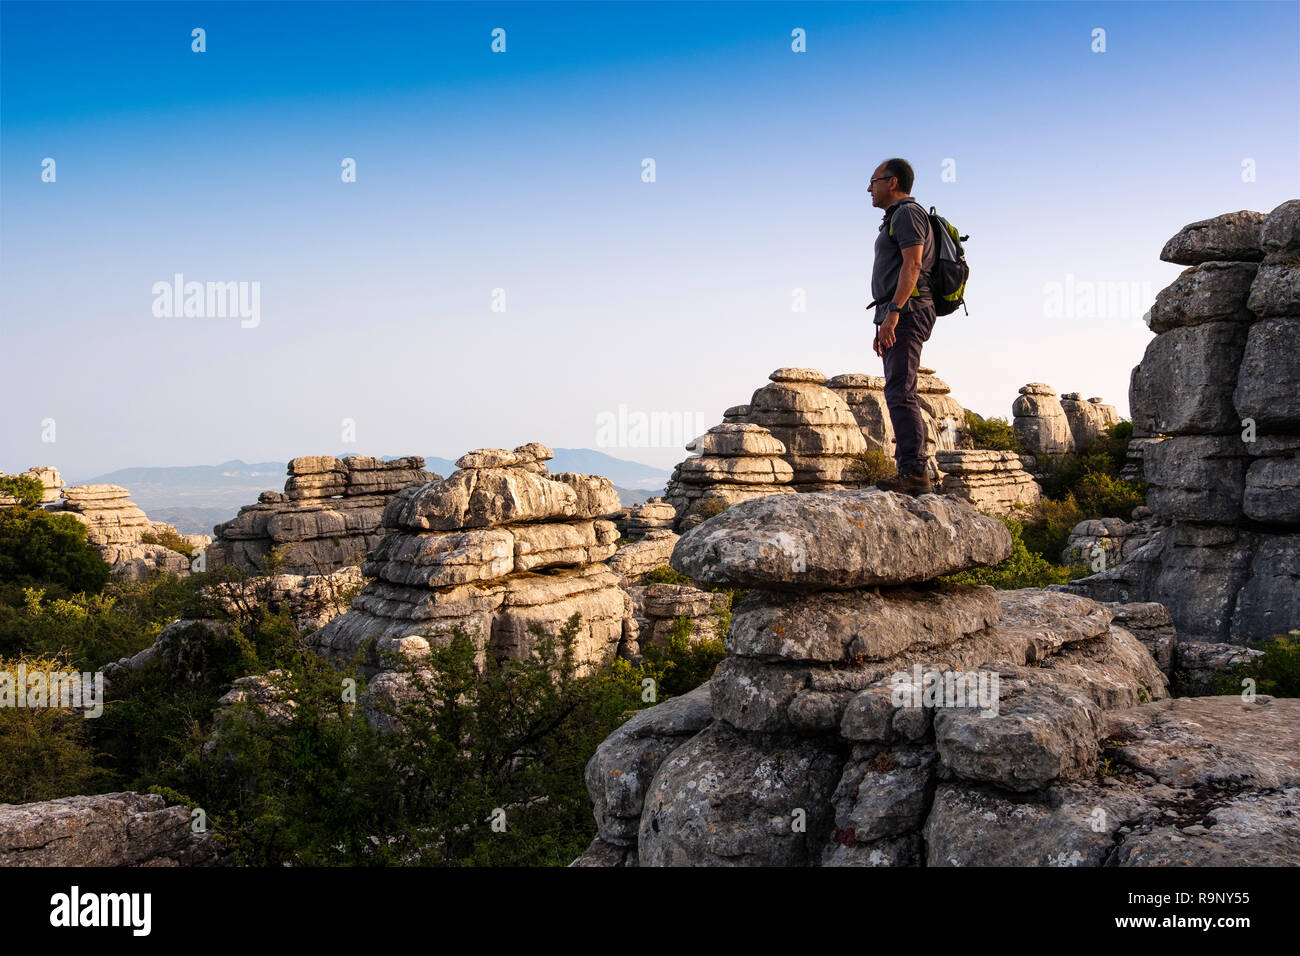 Torcal de Antequera, Erosion working on Jurassic limestones, Málaga province. Andalusia, Southern Spain Europe. - Stock Image